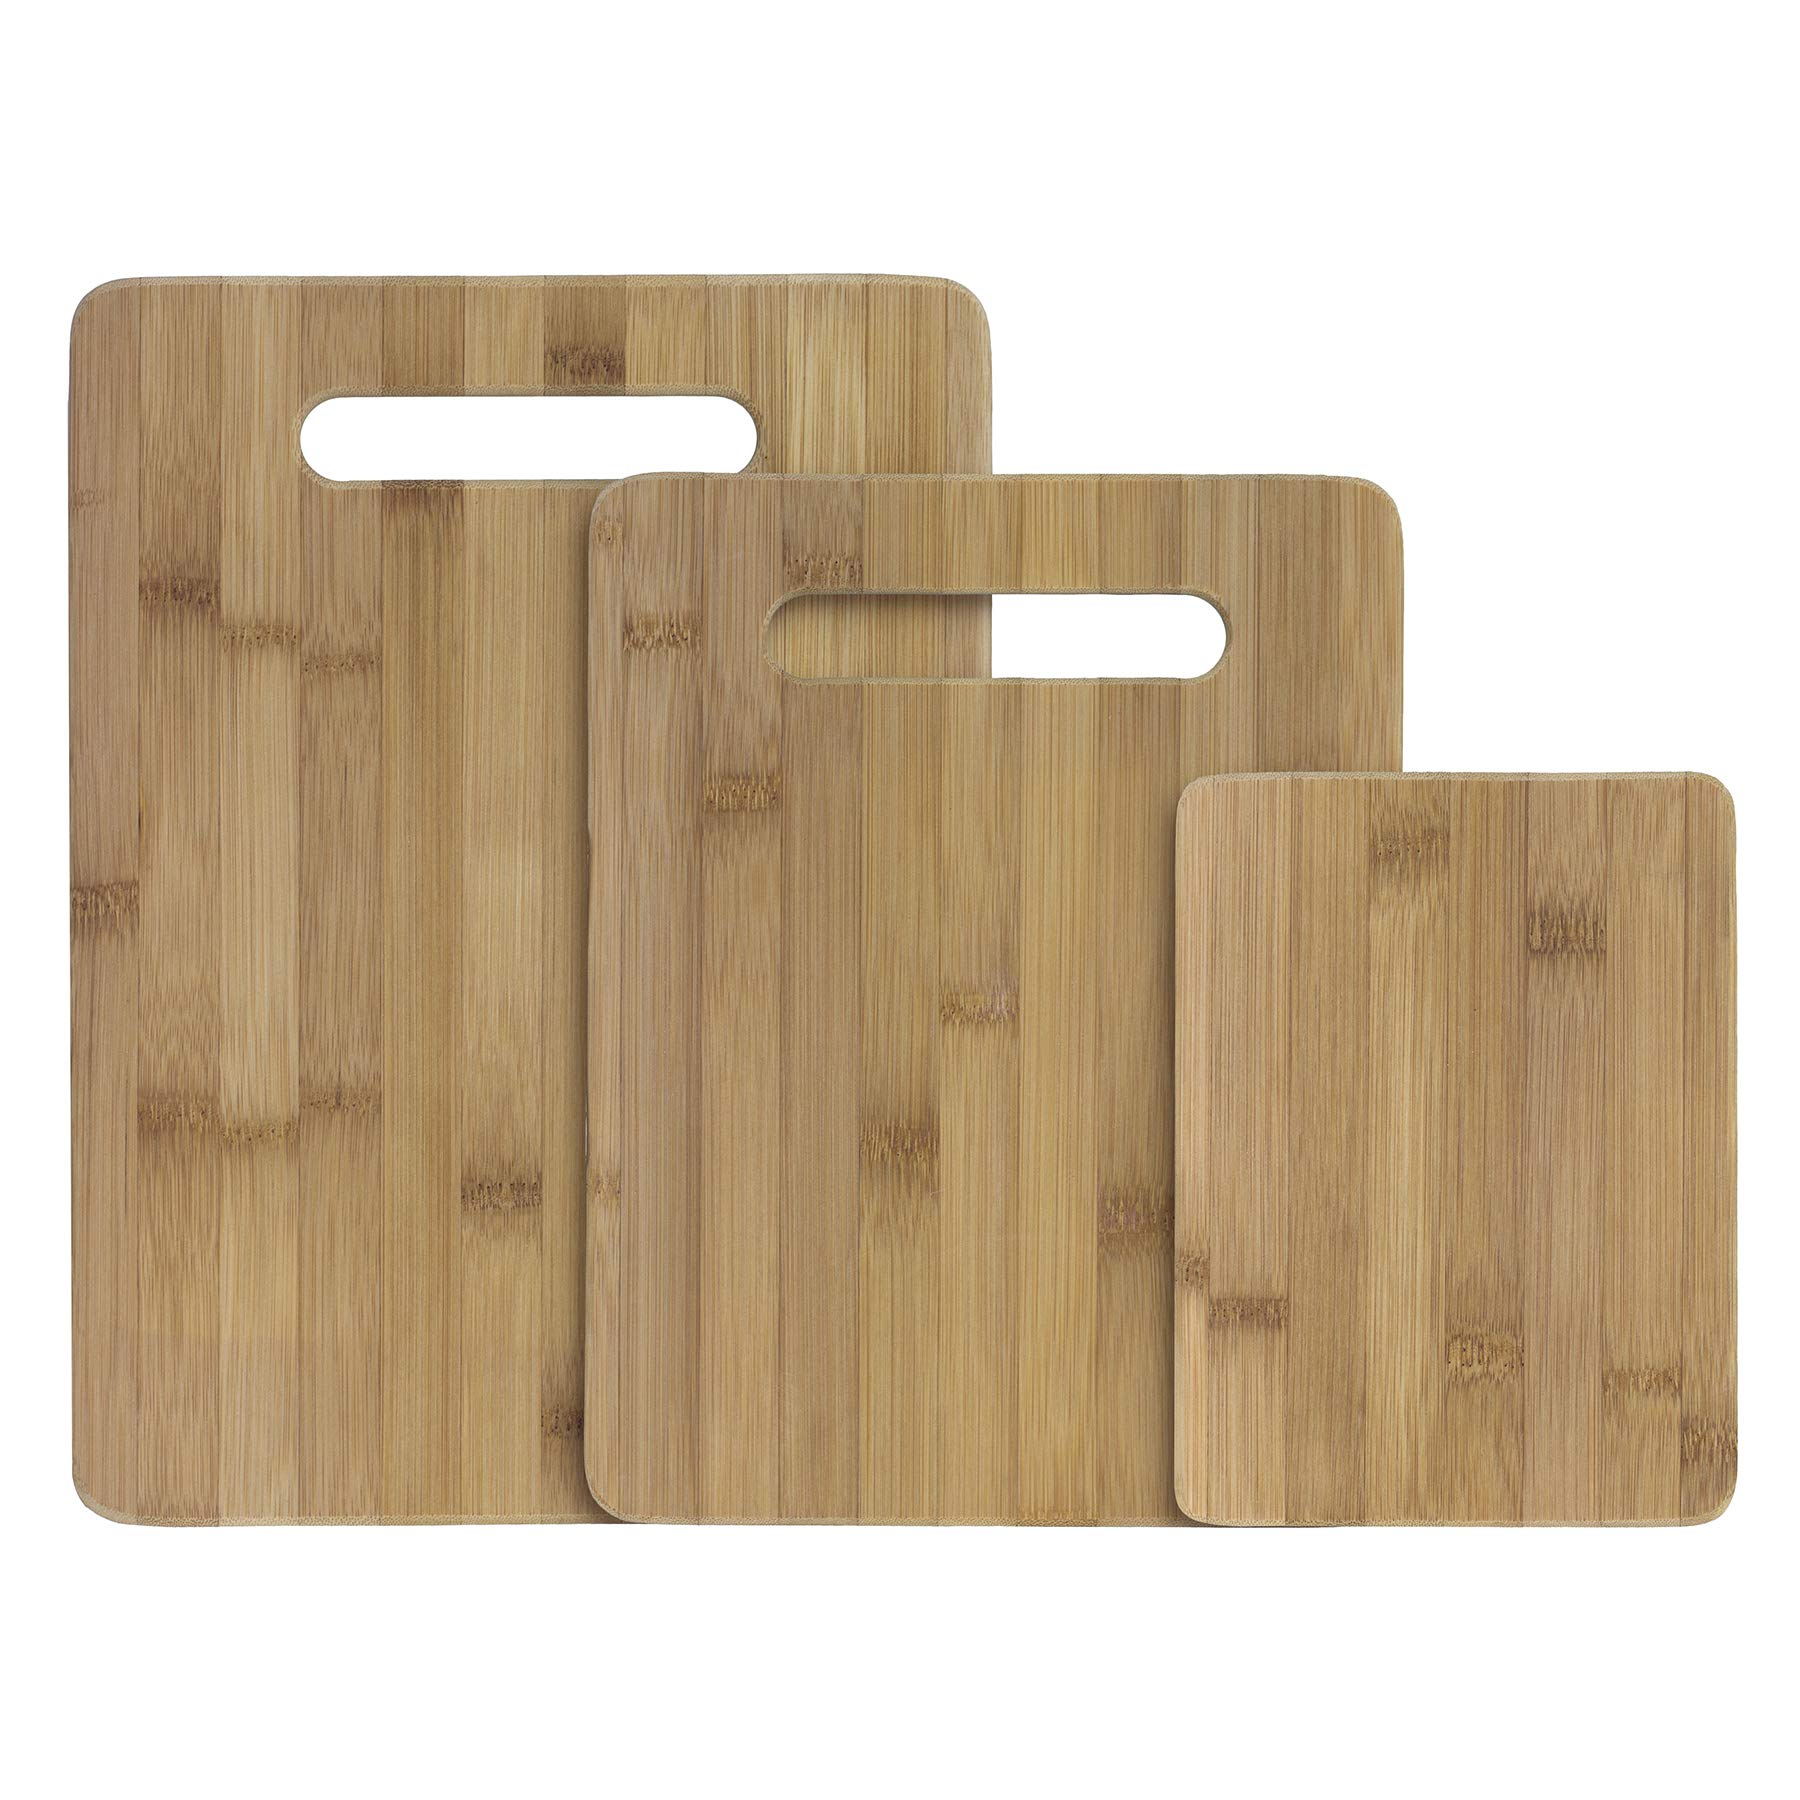 Totally Bamboo 3-Piece Bamboo Serving and Cutting Board Set by Totally Bamboo